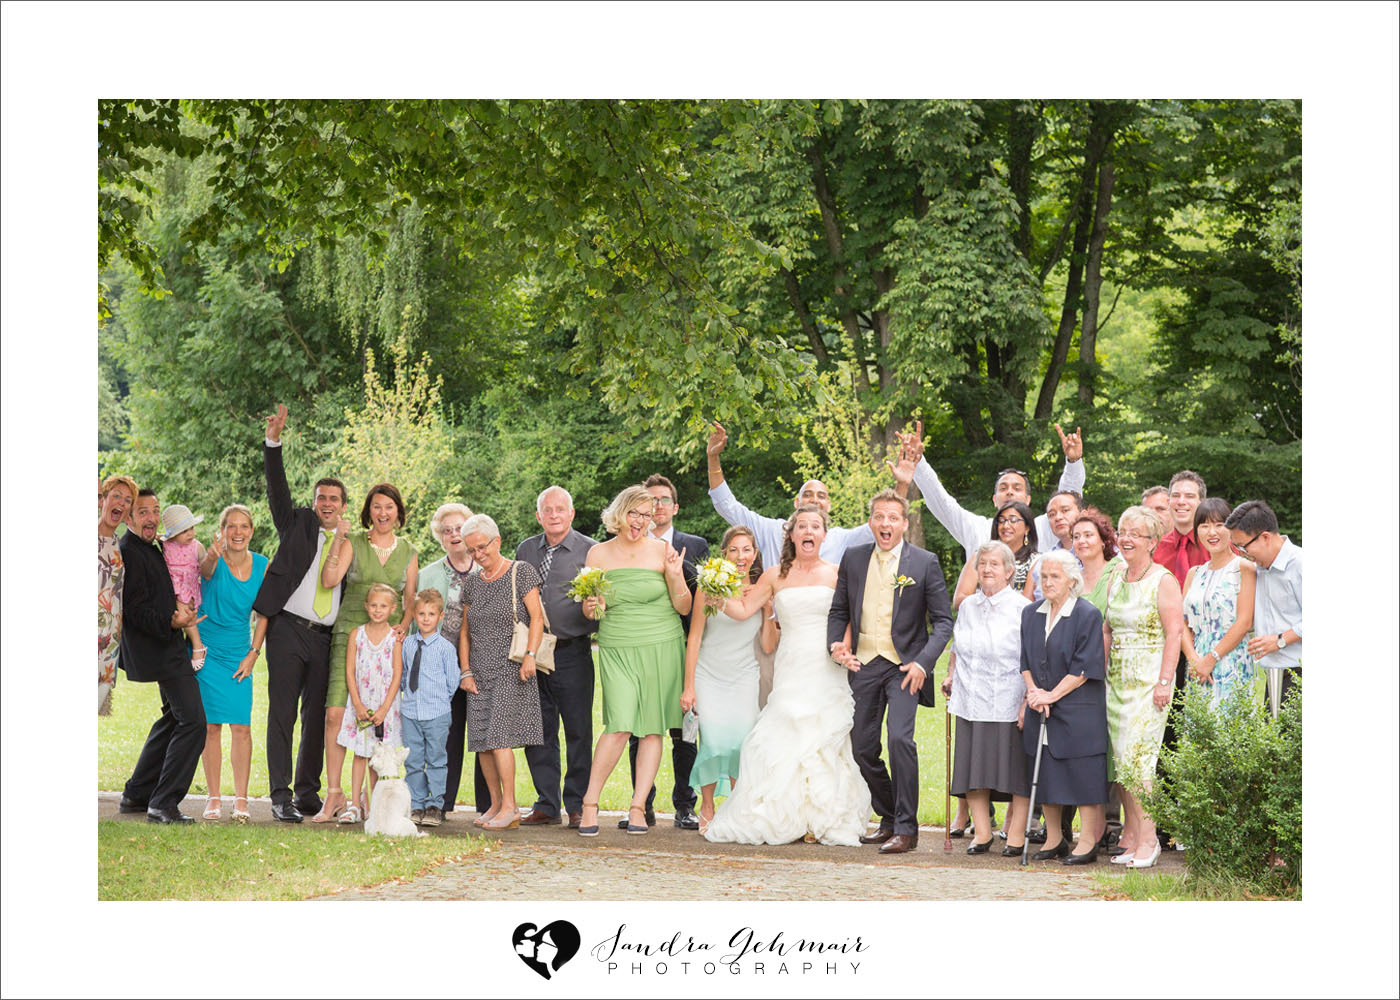 040_heiraten_am_see_spitzvilla_sandra_gehmair